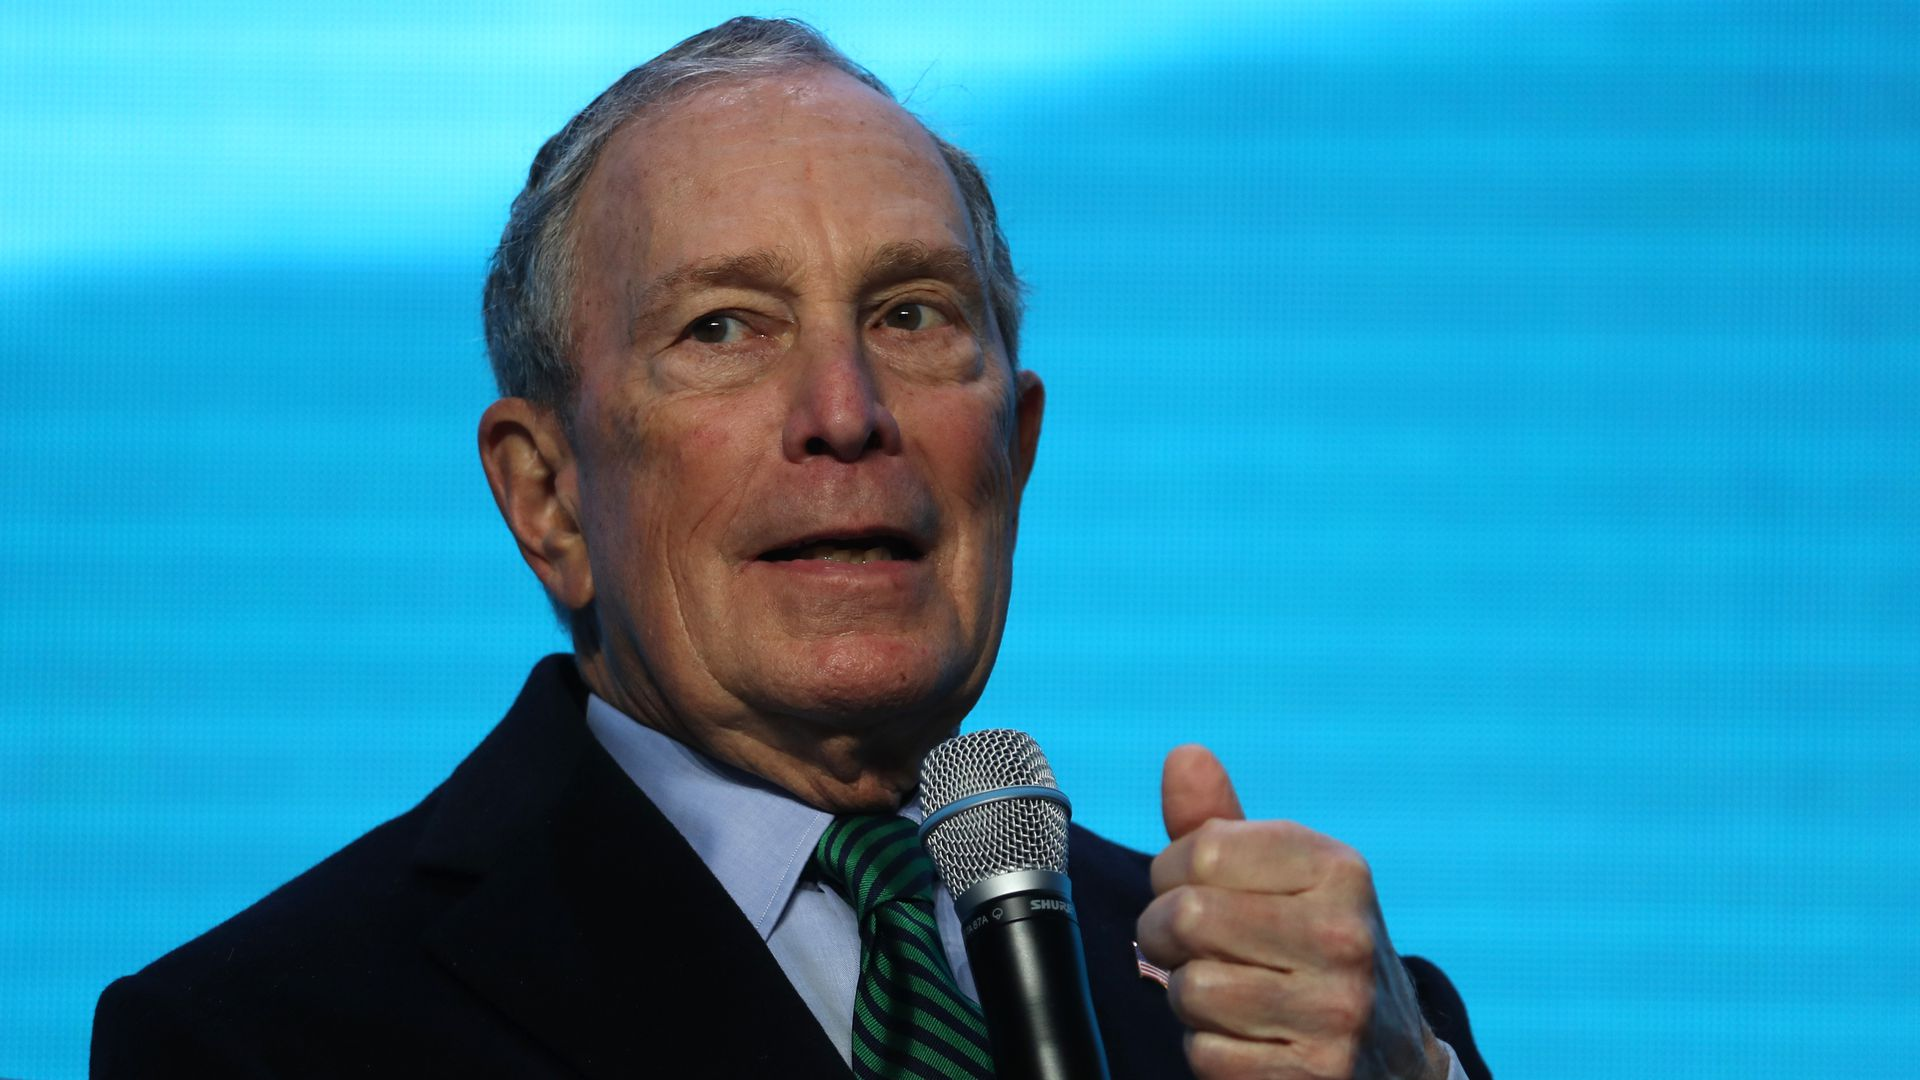 Mike Bloomberg wants to cut U.S. greenhouse gas emissions in half by 2030